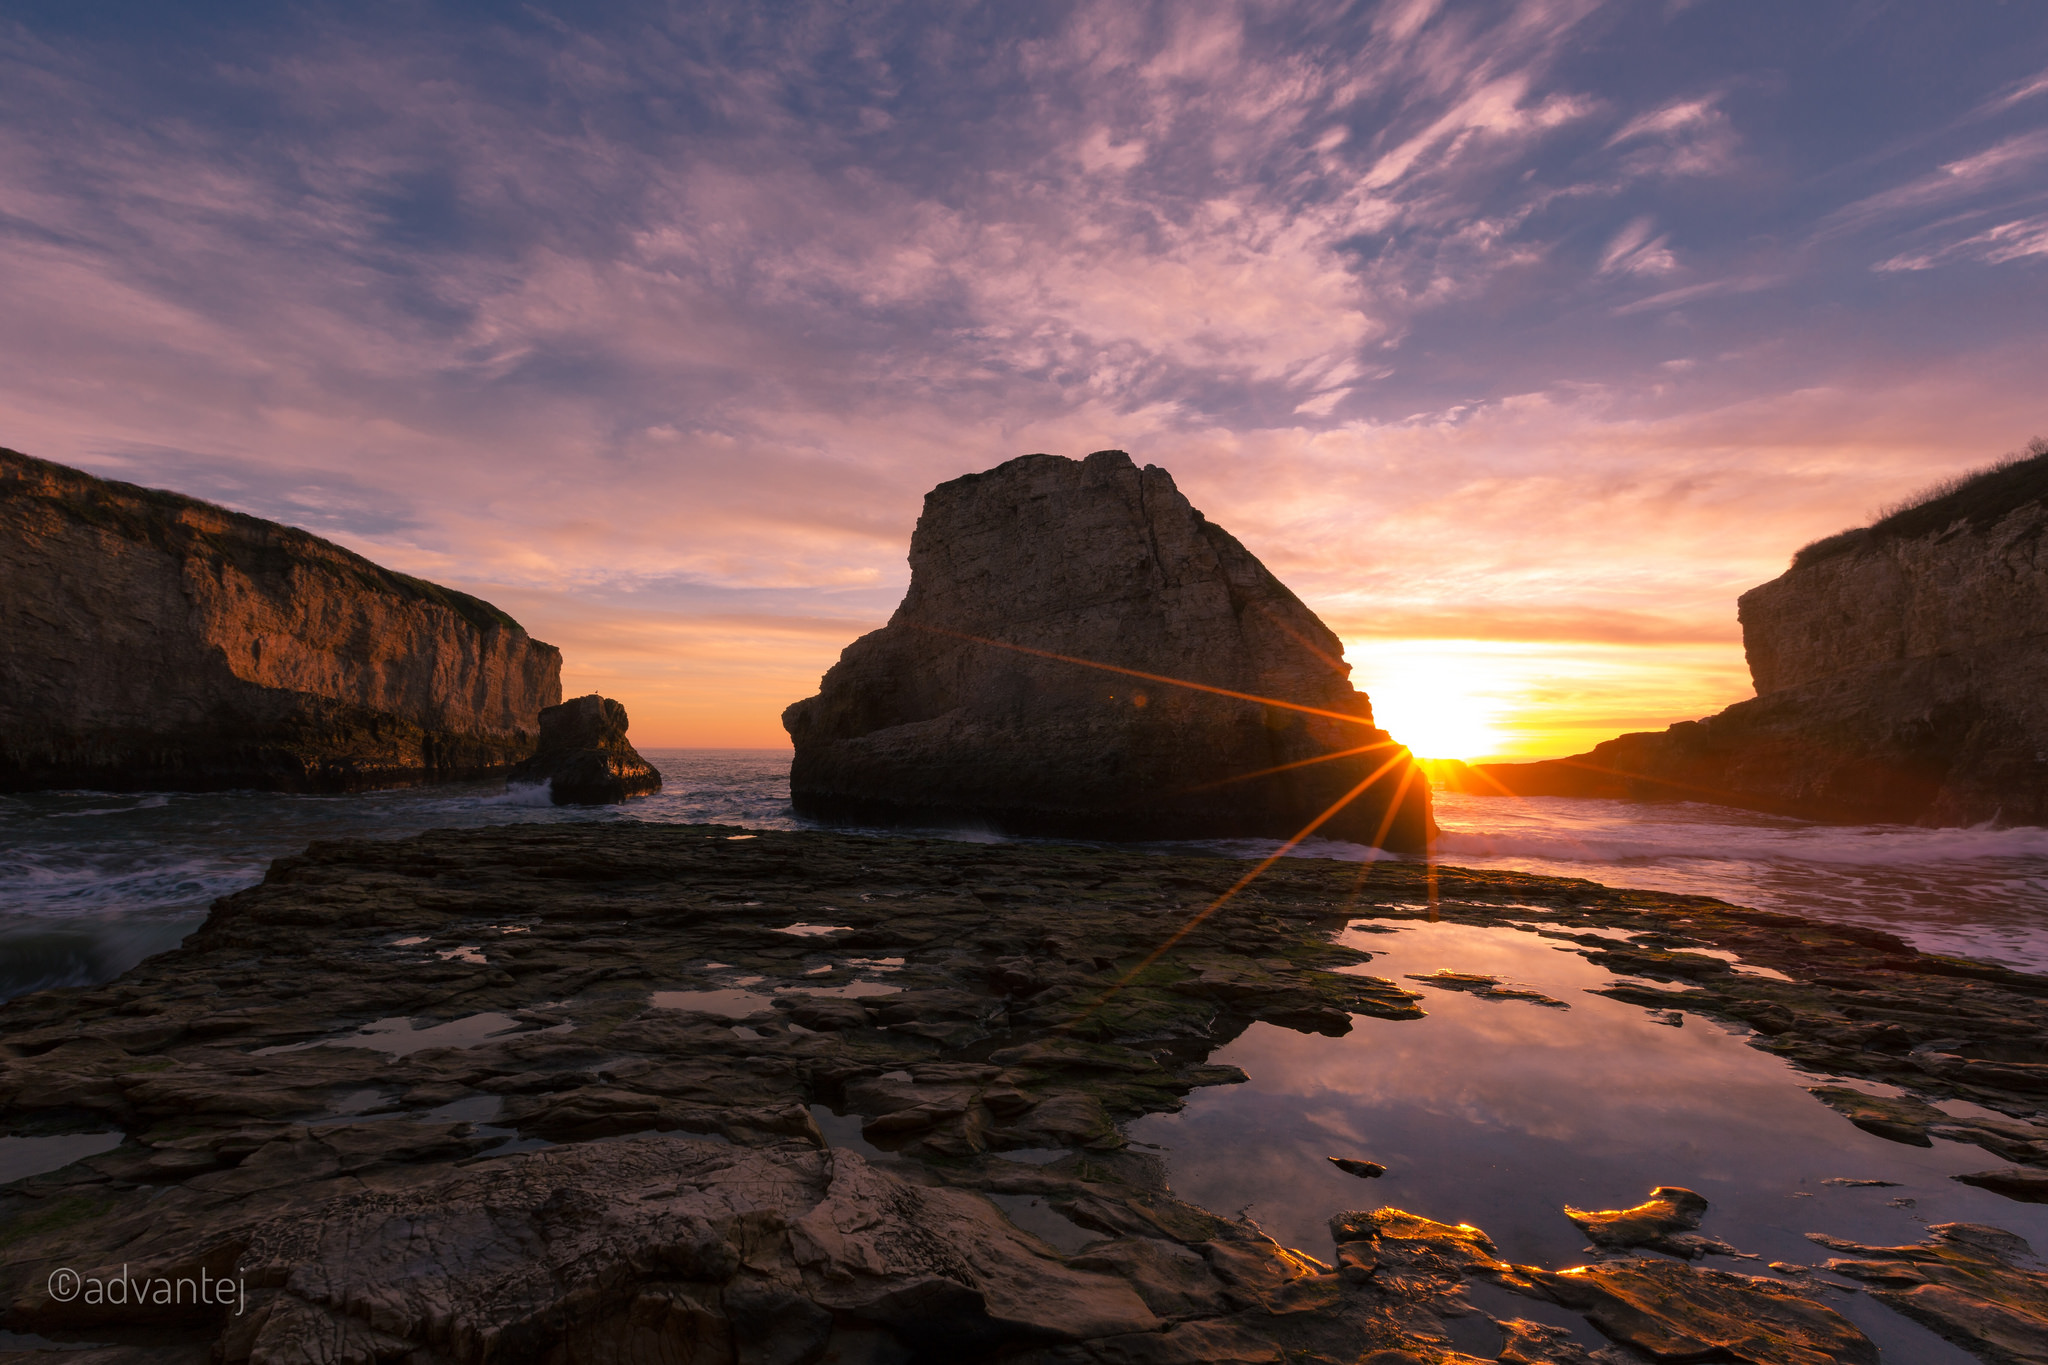 Sunset at Sharkfin cove